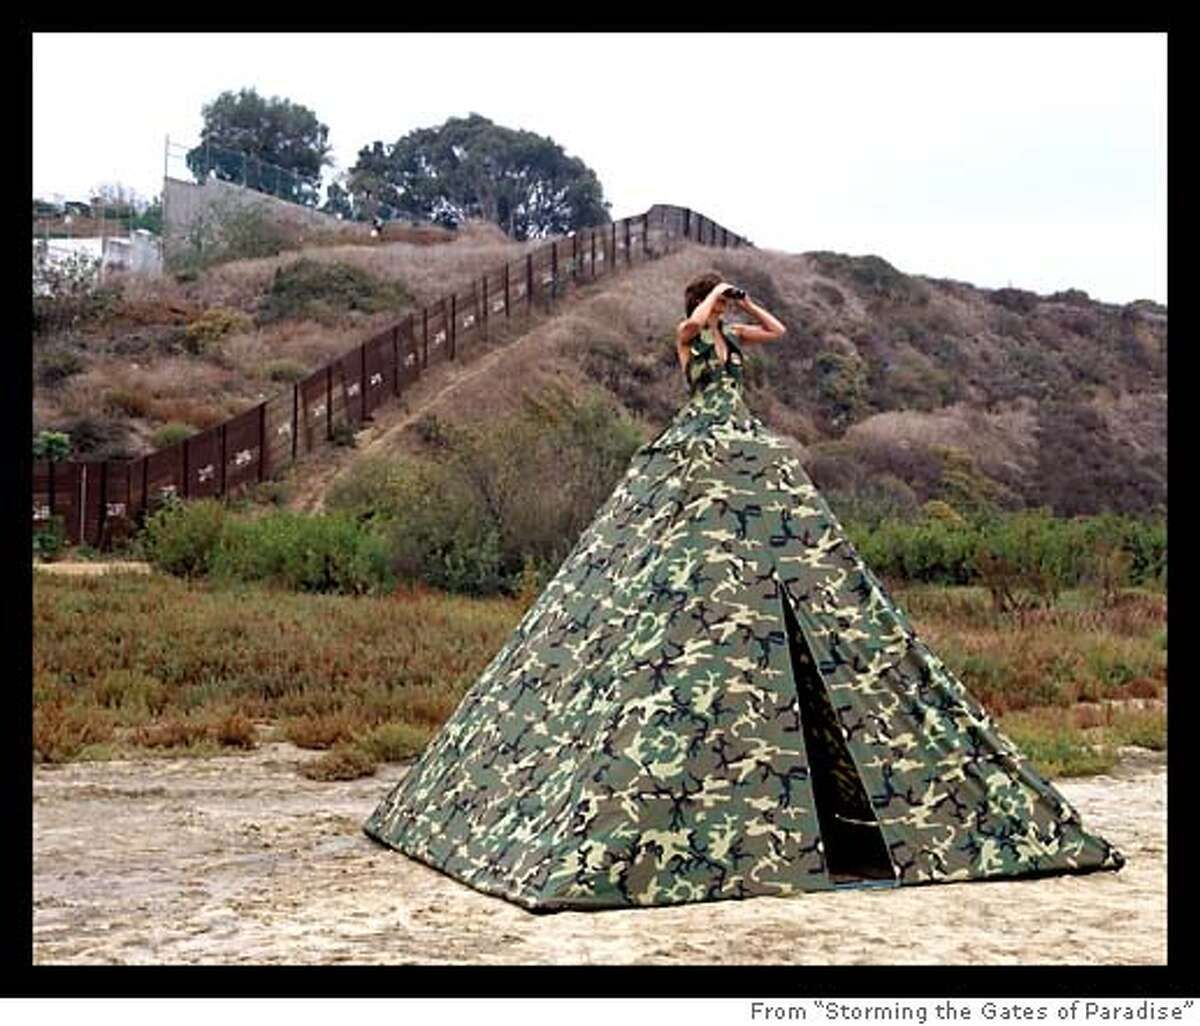 """This is a one time use to be used only with the review of Rebecca Solnit's book """"Landscapes For Politics."""" The following info must accompany the photo: Ms. Homeland Security - Illegal Entry Dress Tent by Robin Lasser Adrienne Pao (Installed beneath the California/Mexico border fence), 2005, 14�W x 14�D x 14�H. Gortex camouflage material, PVC pipes, and interior steel structure. Photograph: 50� W x 40� H Chromogenic Print. www.robinlasser.com www.adriennepao.com"""